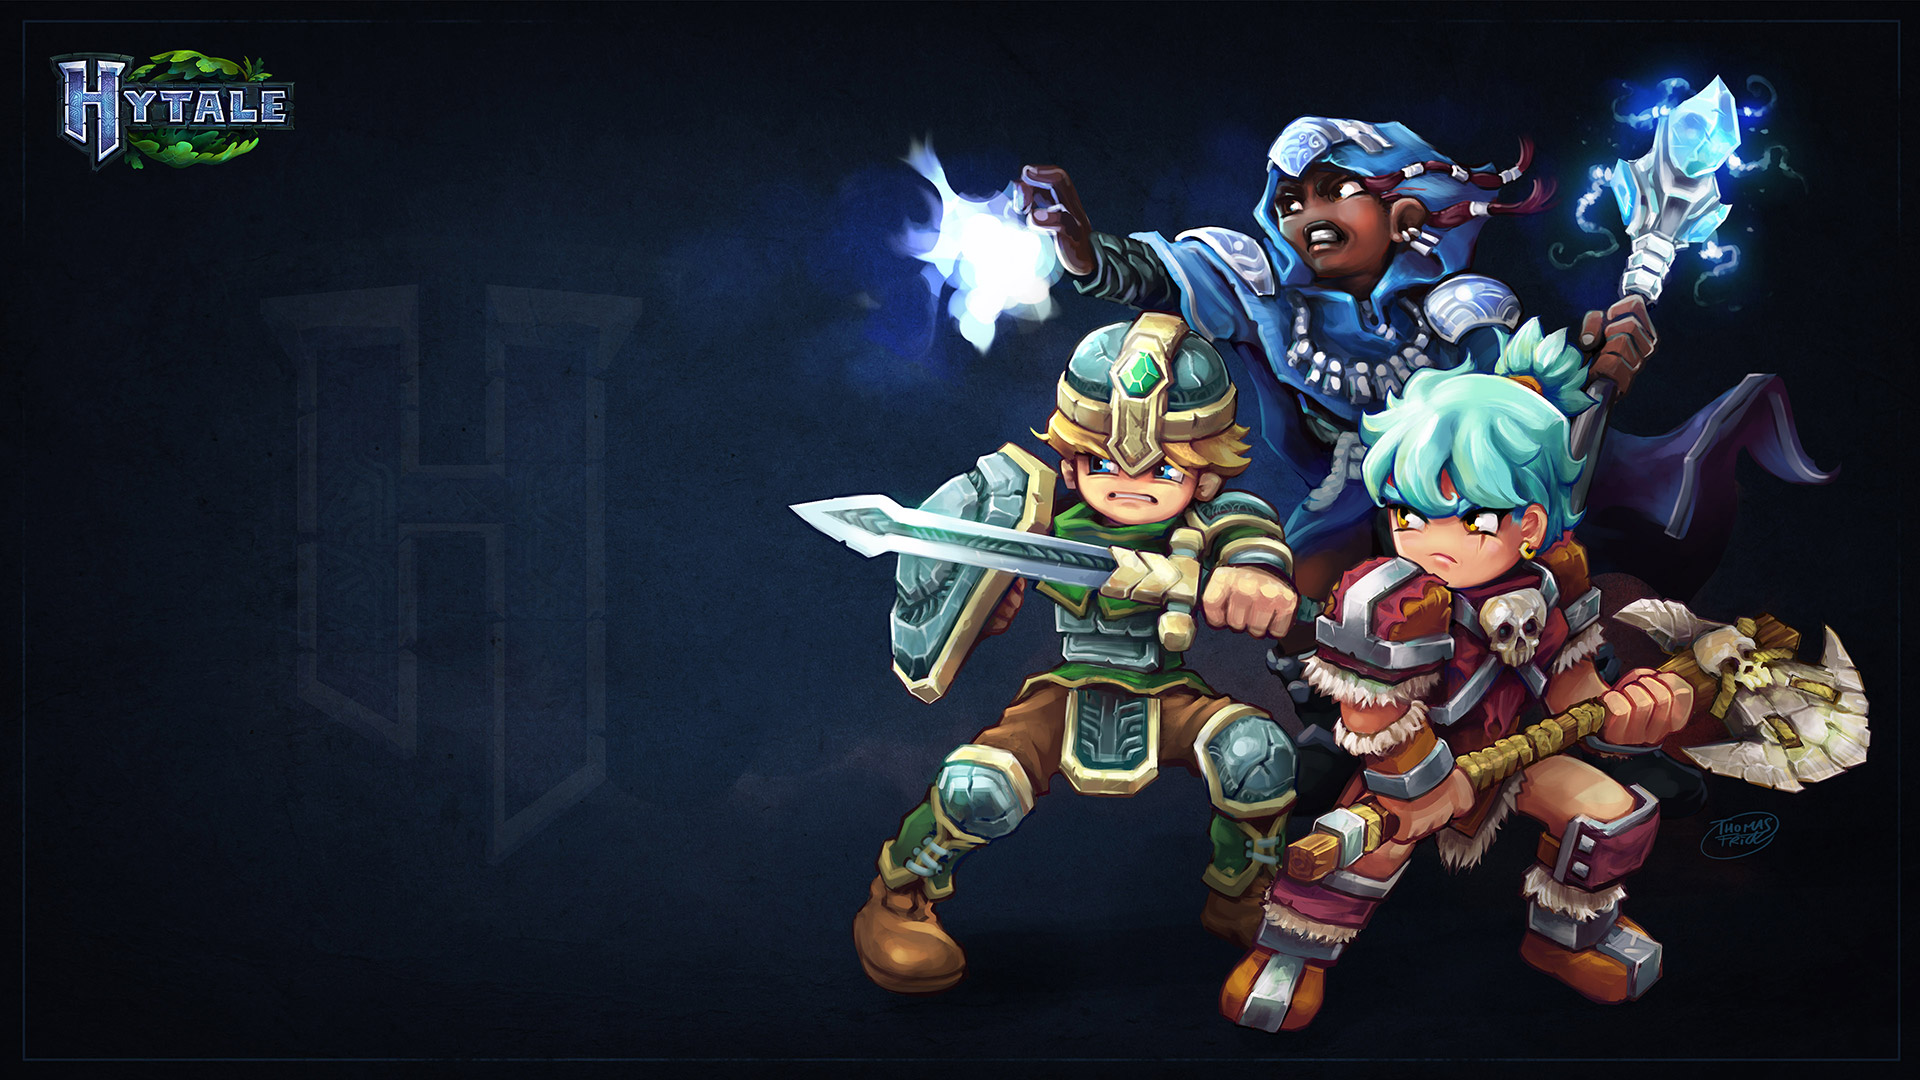 hytale-wallpaper-personnages.jpg